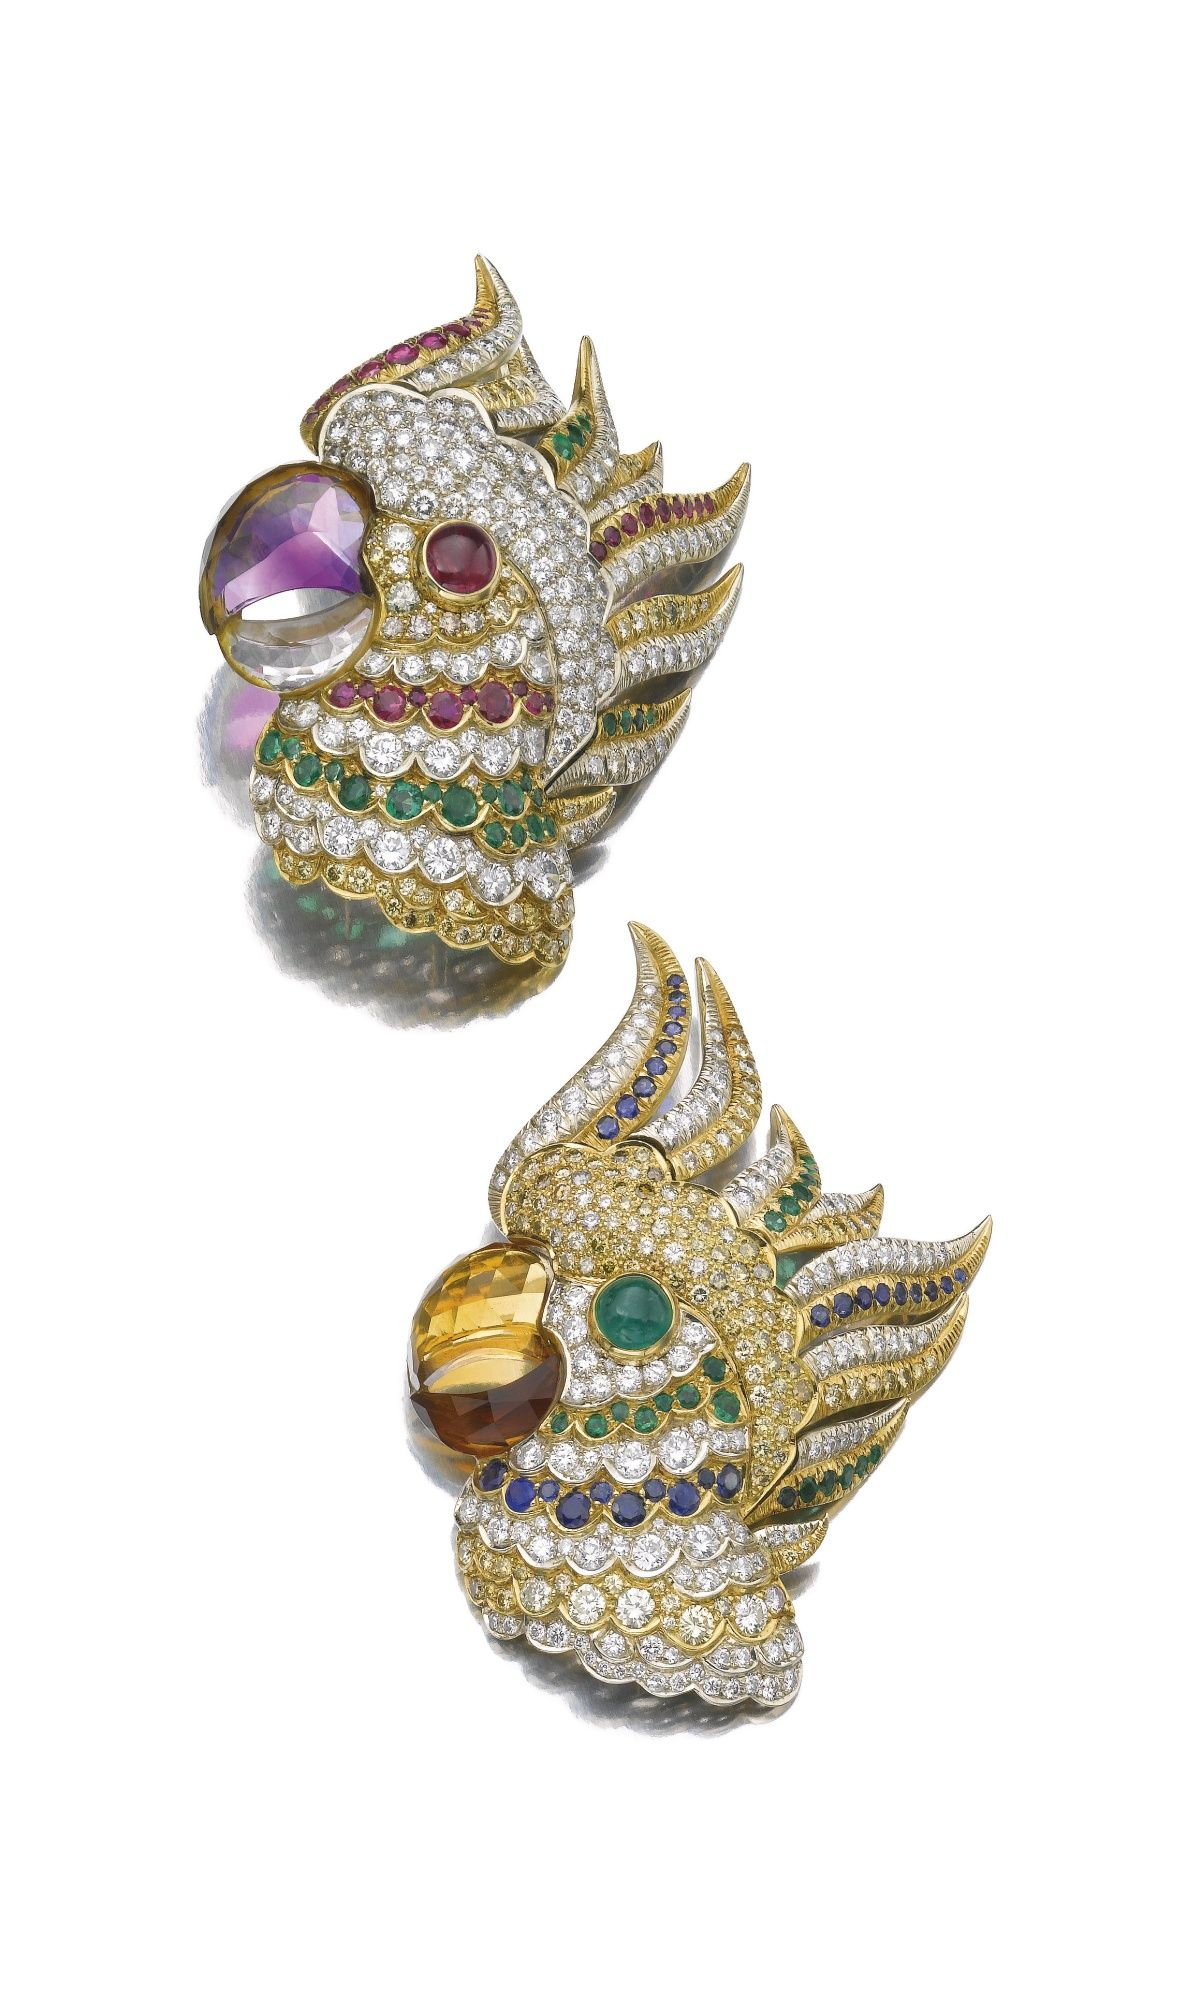 PAIR OF GEM-SET AND DIAMOND CLIP/BROOCHES Each designed as a parrot head with hinged feathers set en tremblant, one with a beak composed of faceted citrines, the head set with cabochon and circular-cut emeralds, and similarly cut sapphires and diamonds, the other with a beak composed of faceted amethysts, the head set with cabochon and circular-cut rubies, and similarly cut emeralds and diamonds.